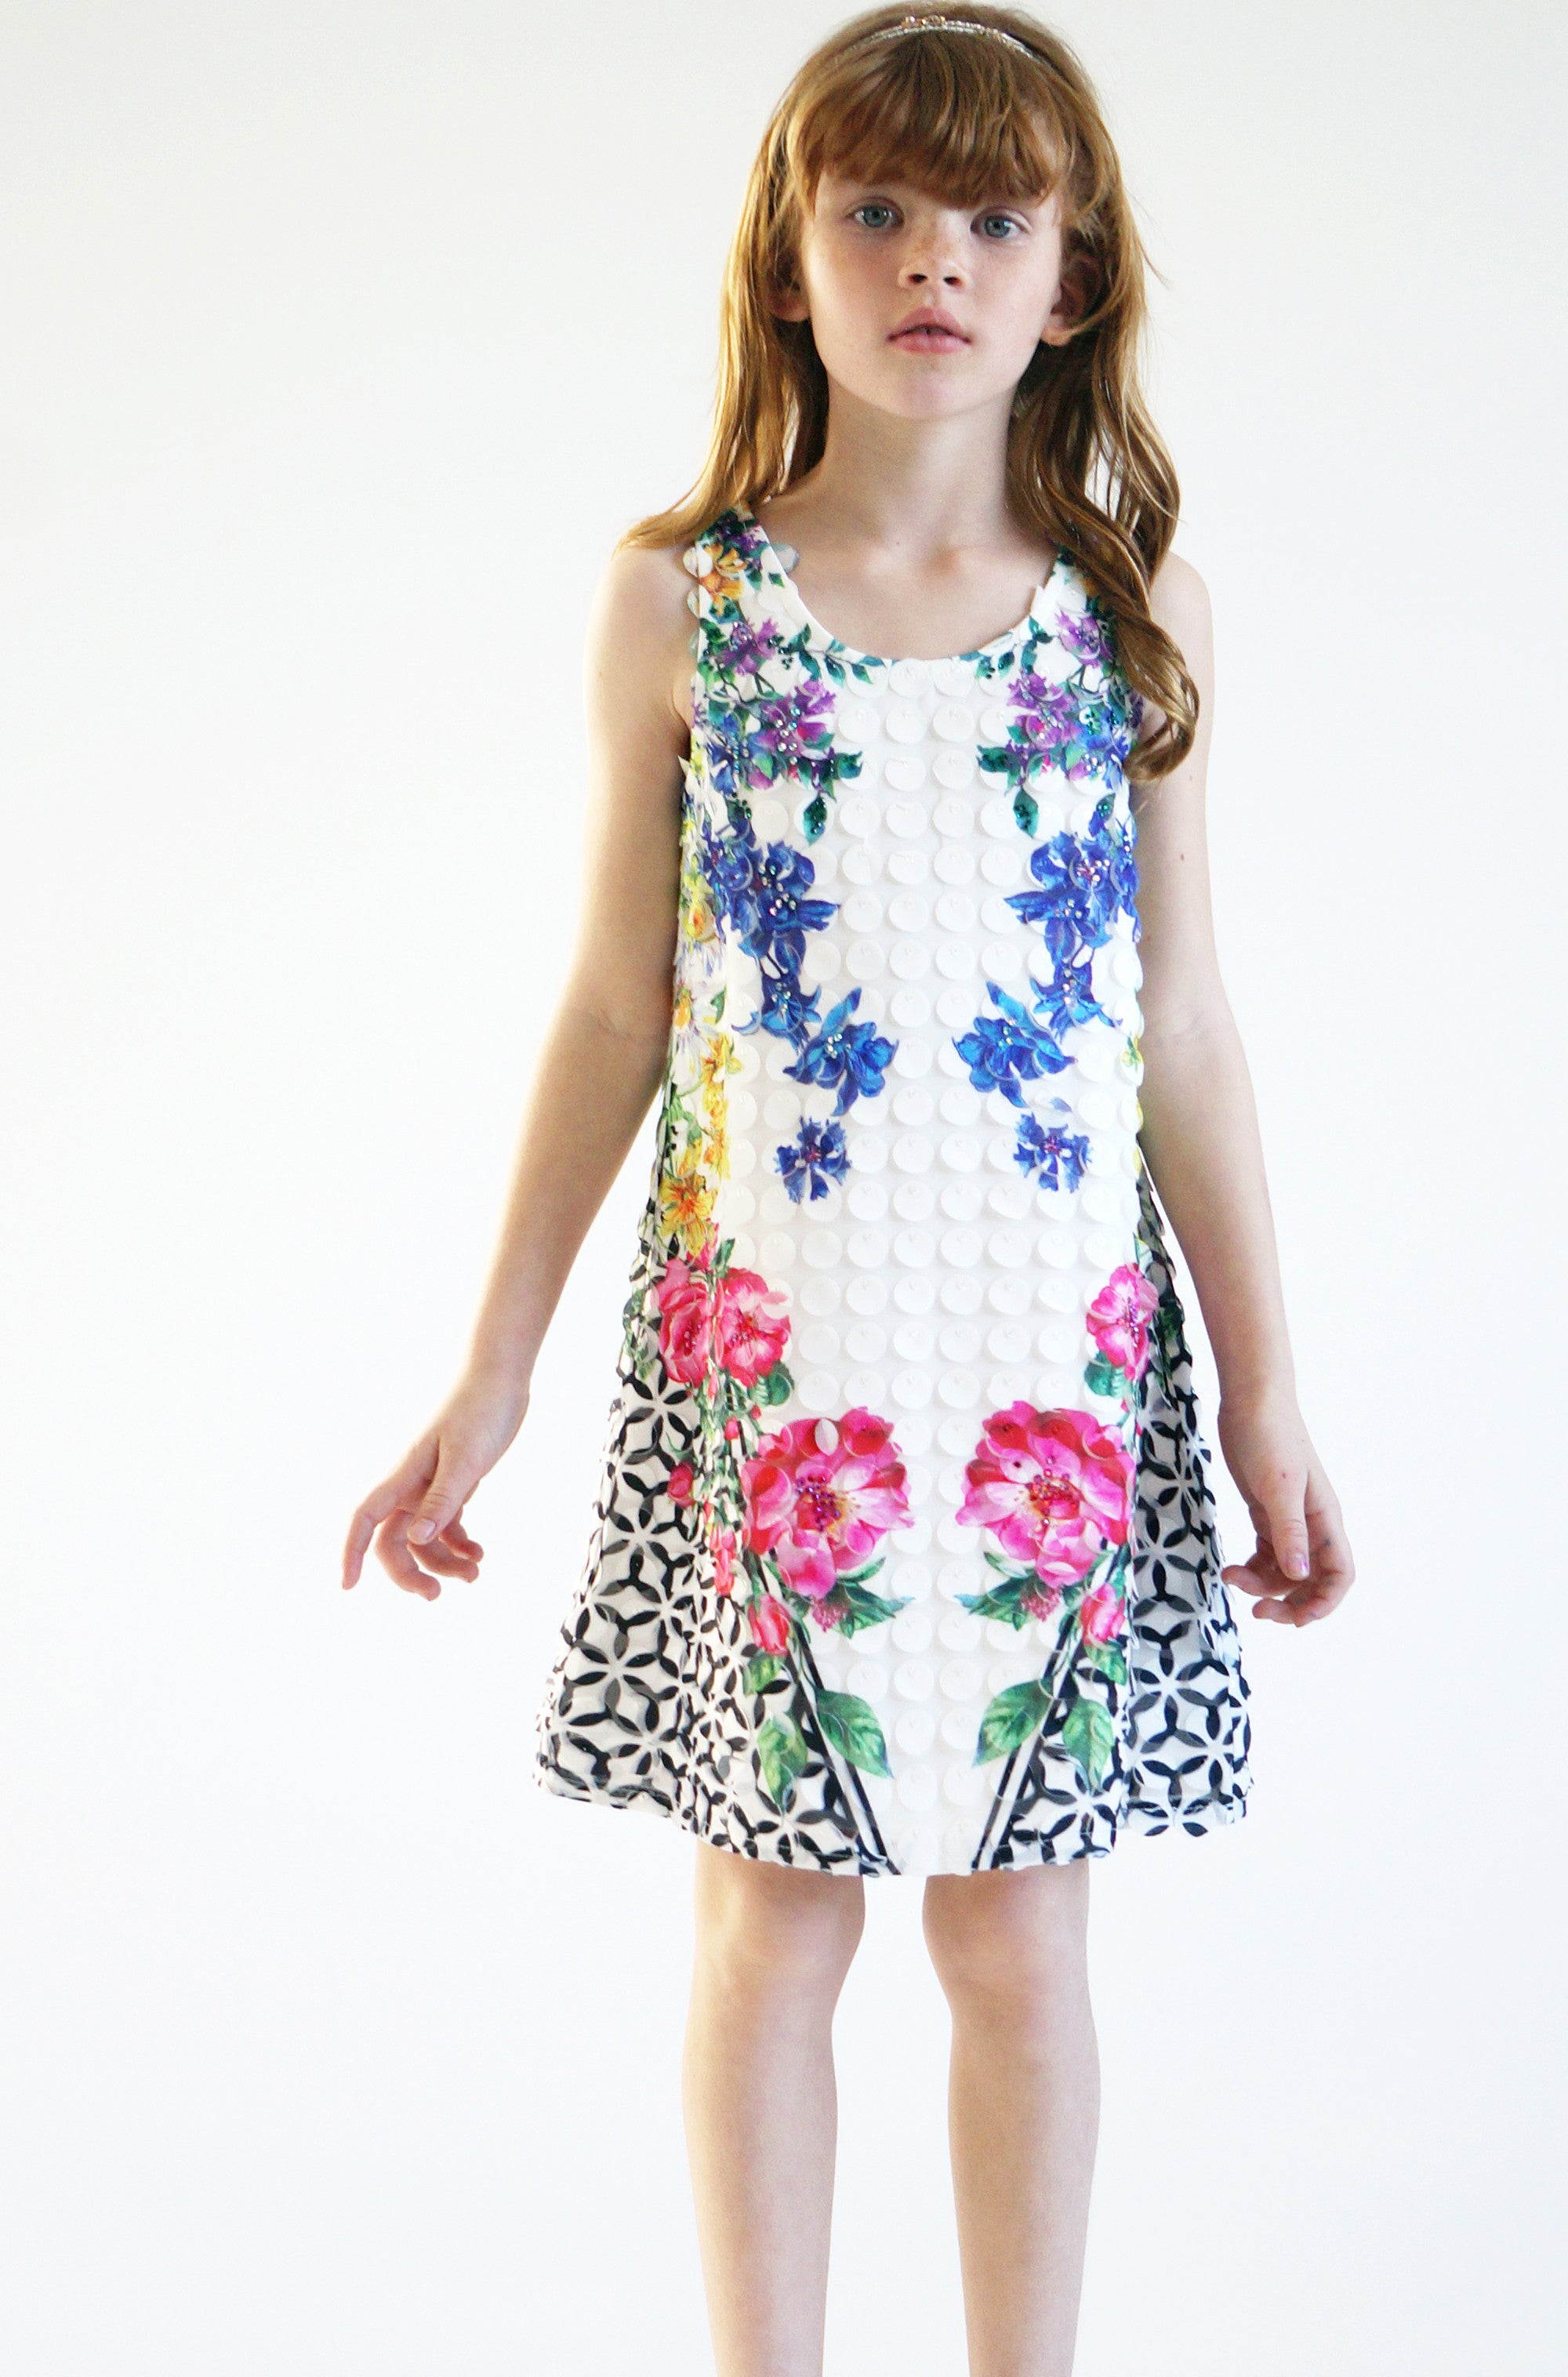 Chic Blooms 3D Dress